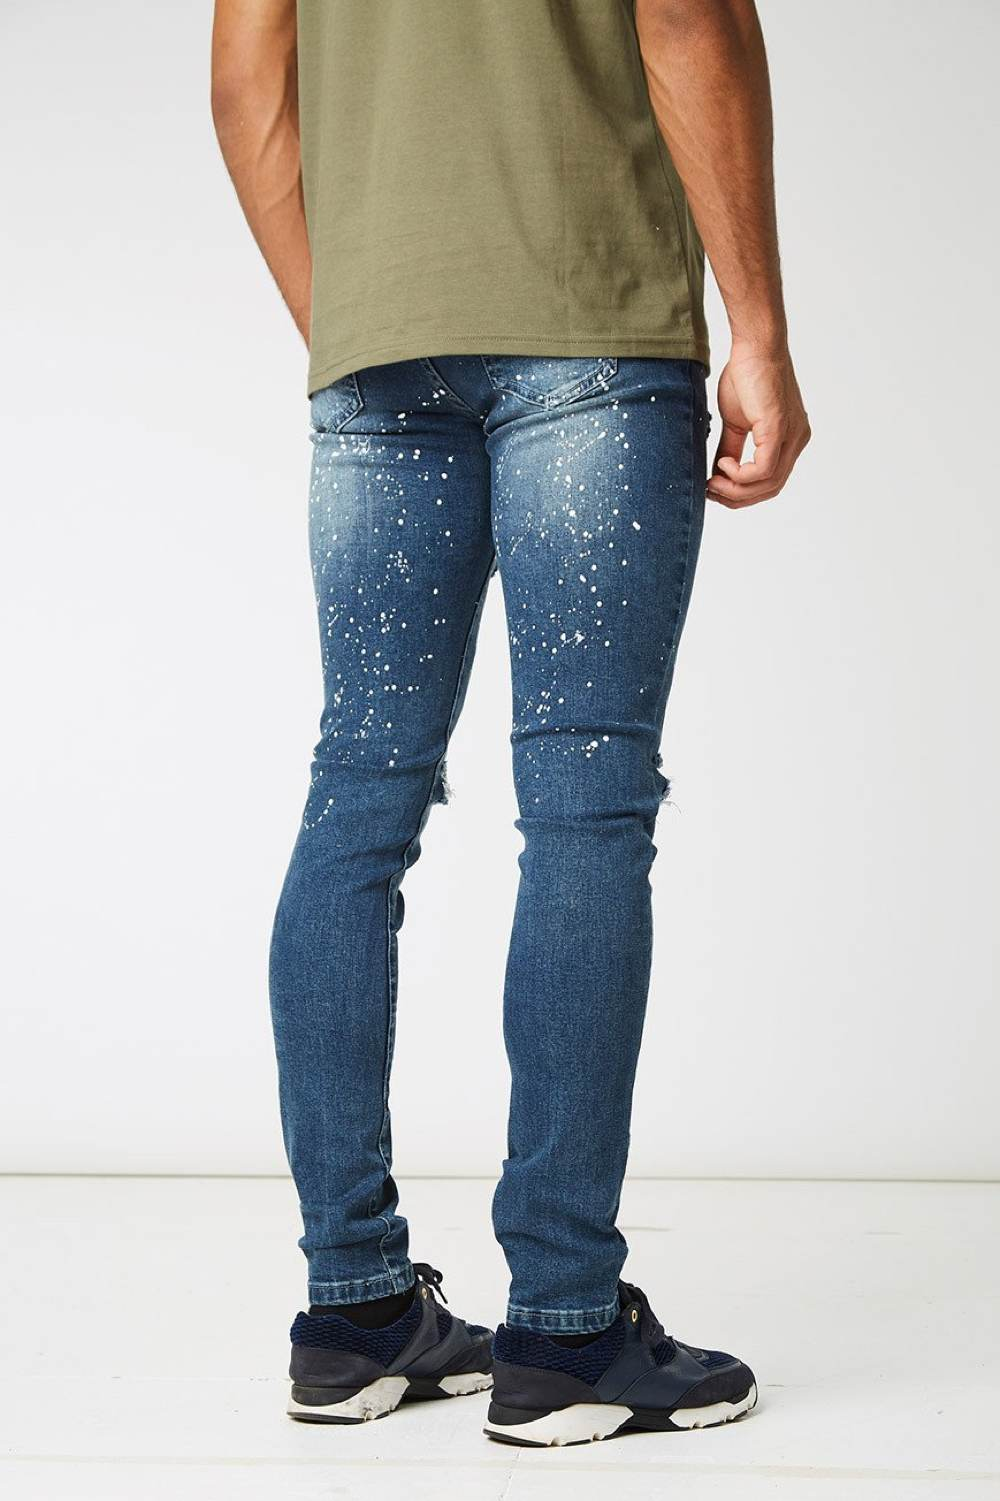 Section Clo Monet Paint Splash Ripped Jeans - Blue - 4